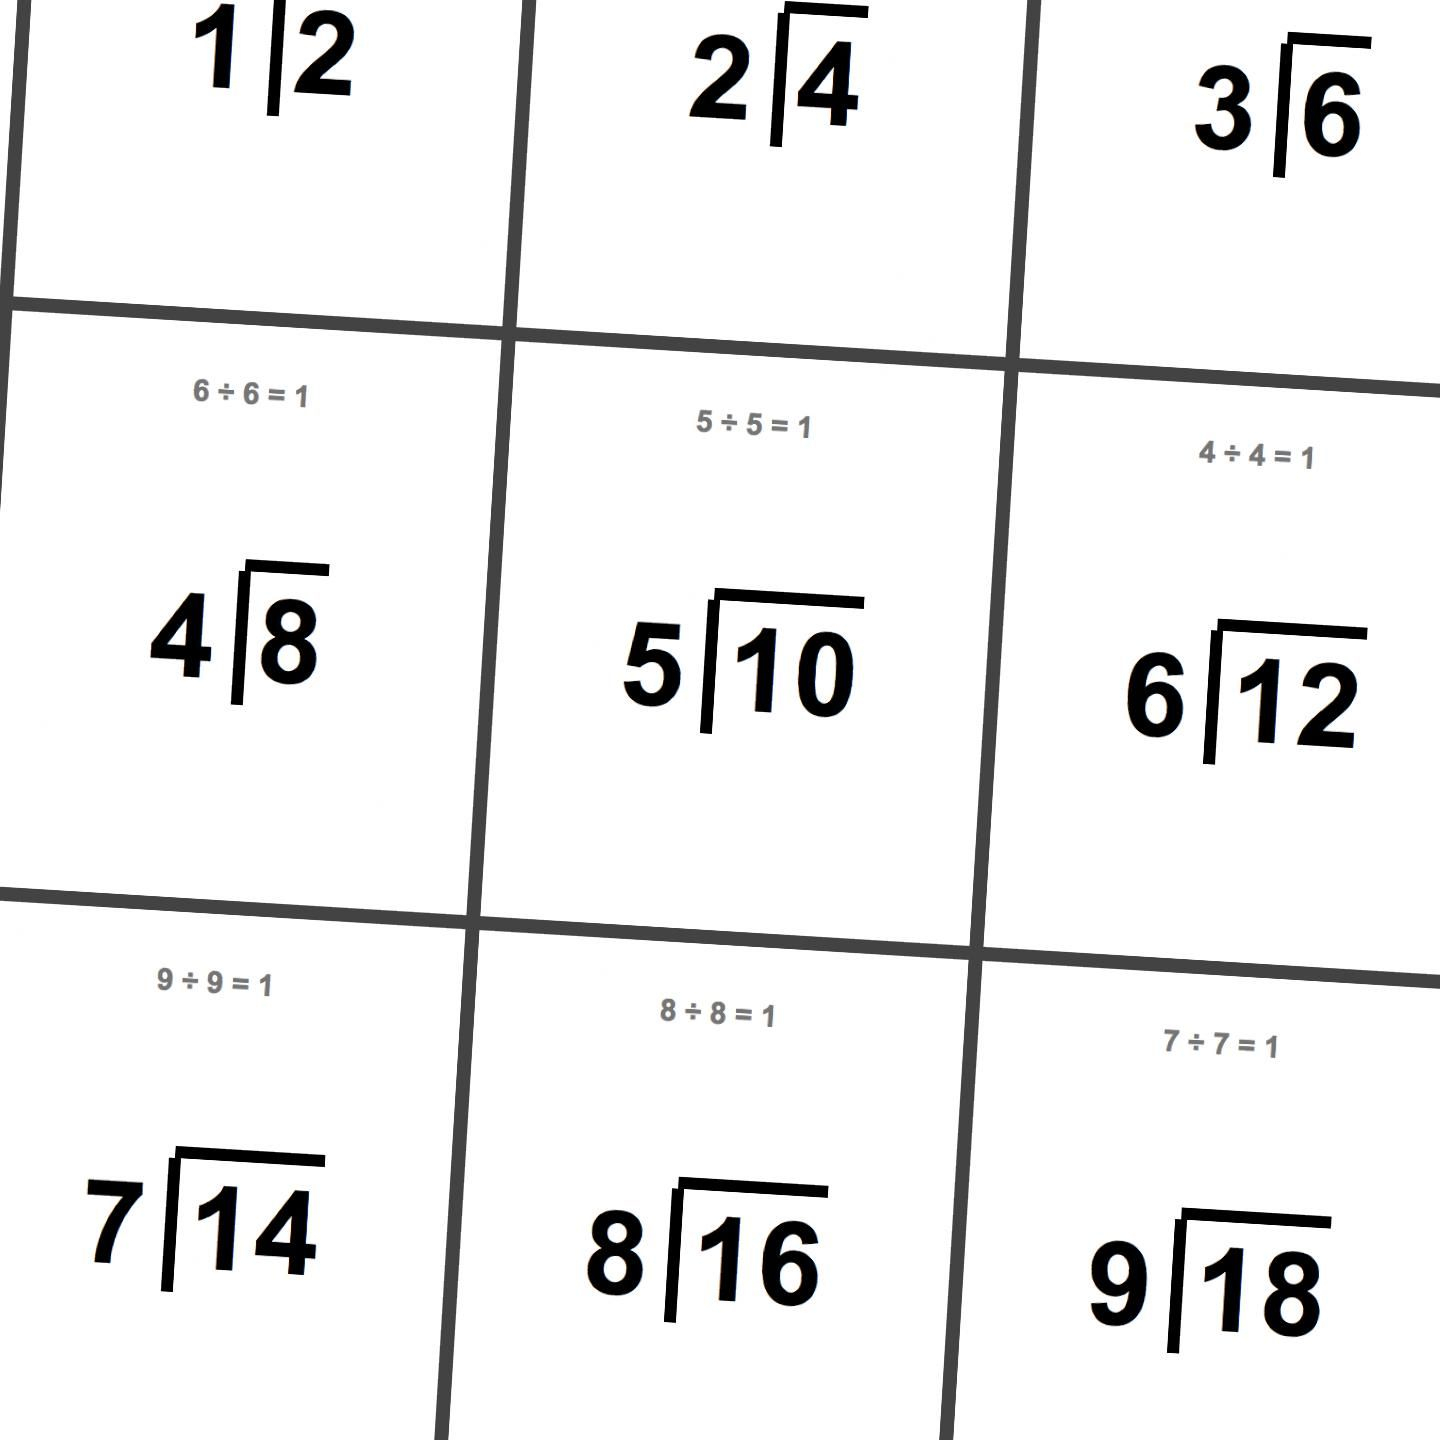 Printable Division Flashcards! | Math Worksheets, Free intended for Large Printable Multiplication Flash Cards